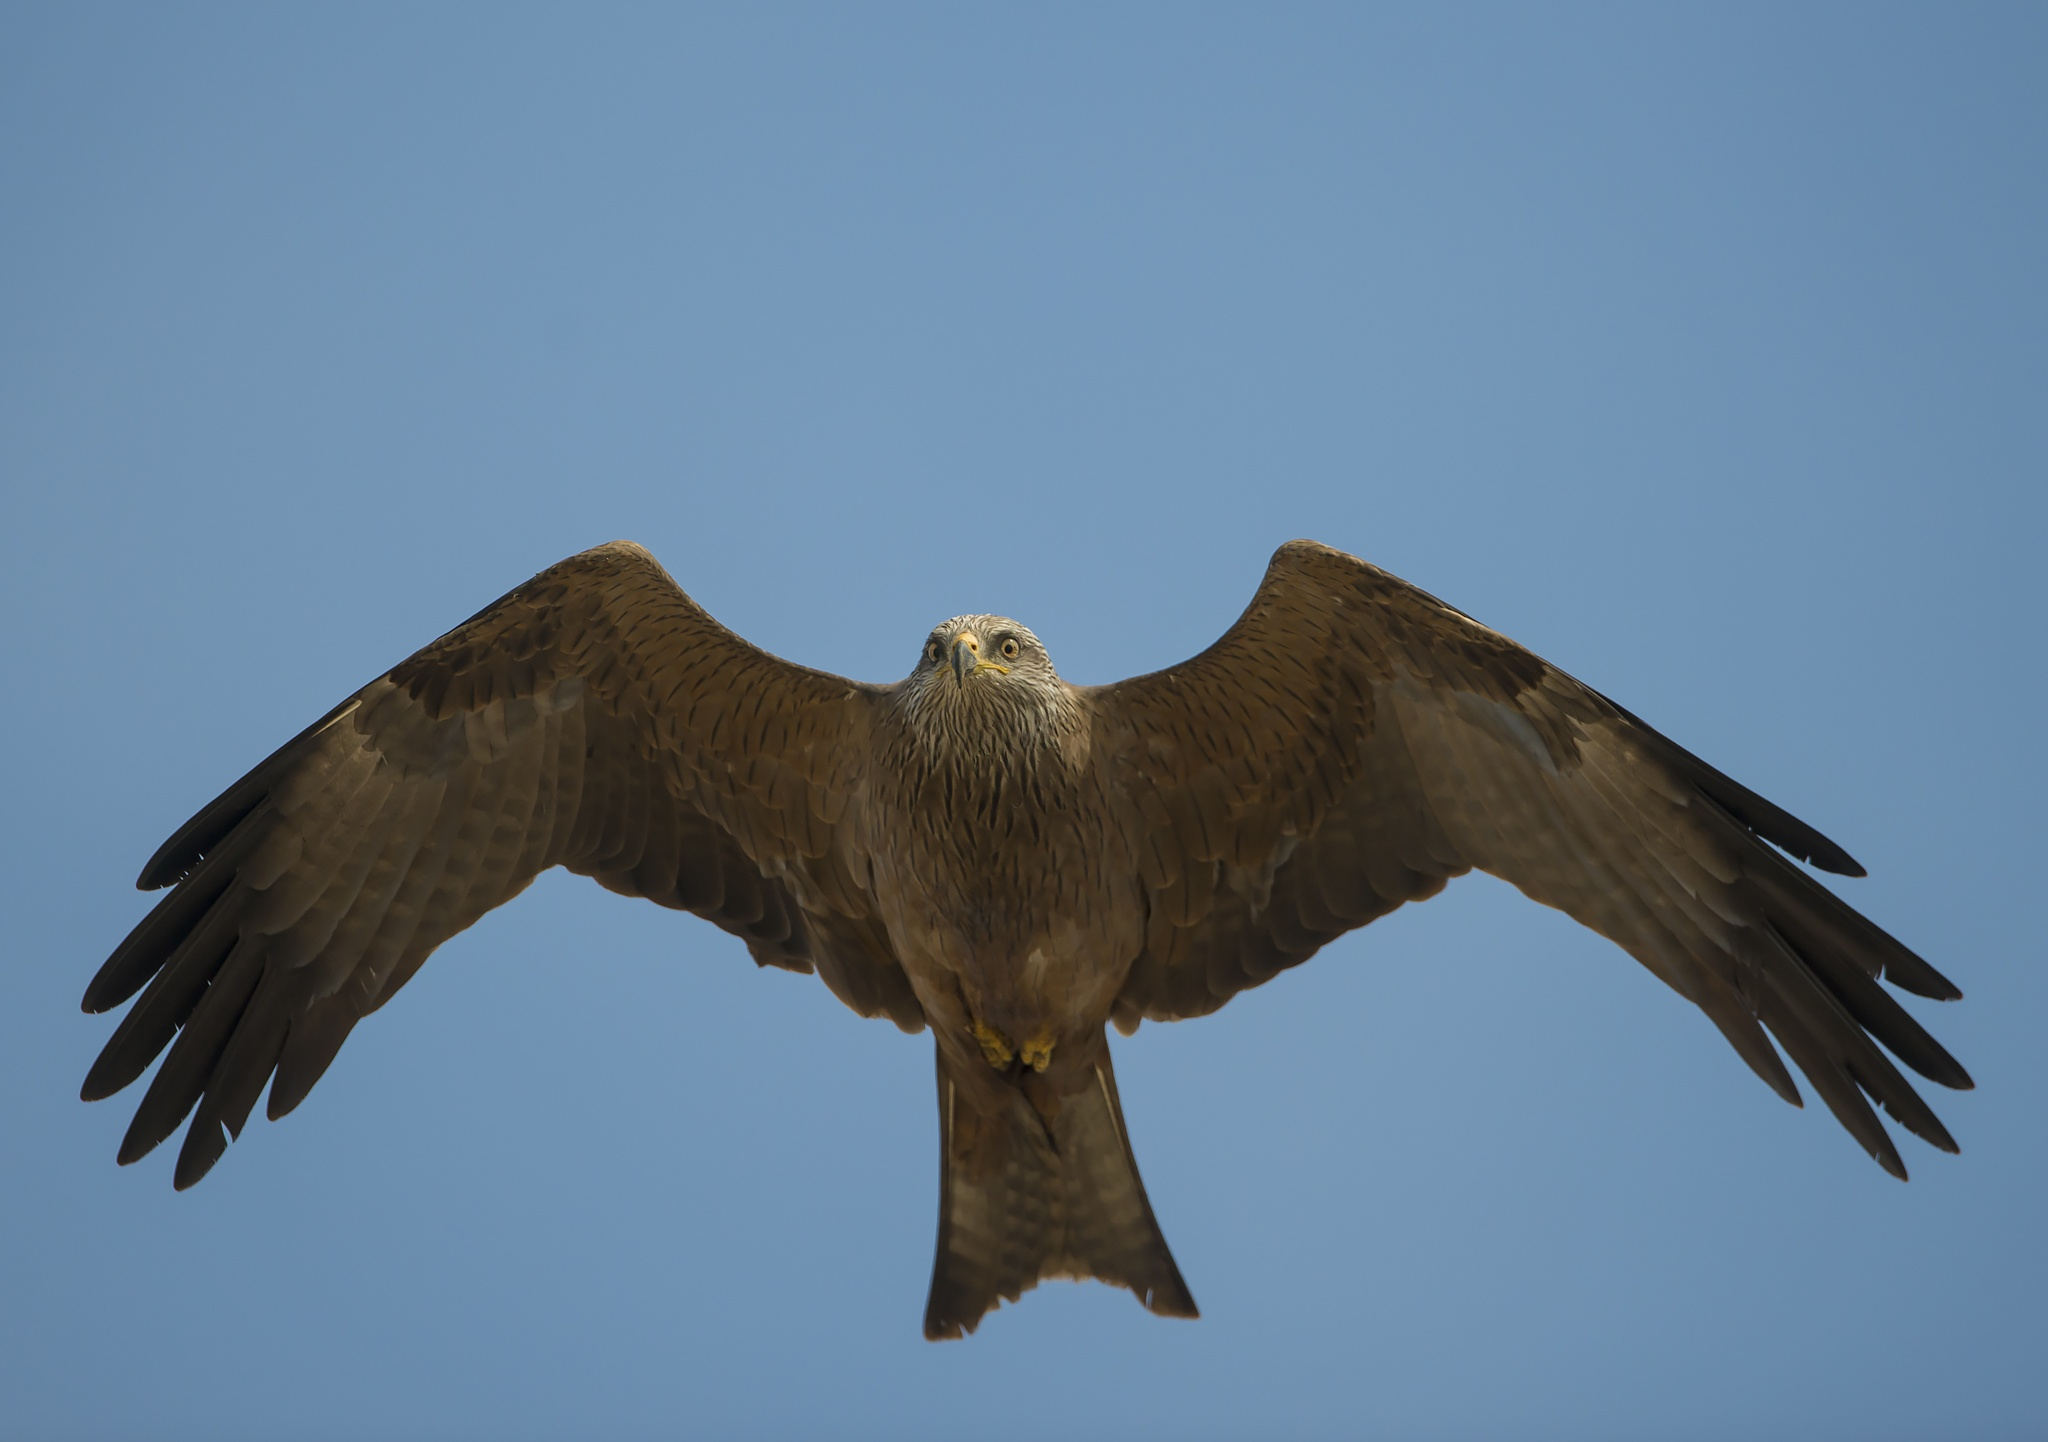 Black Kite on the move by Clive Finlayson